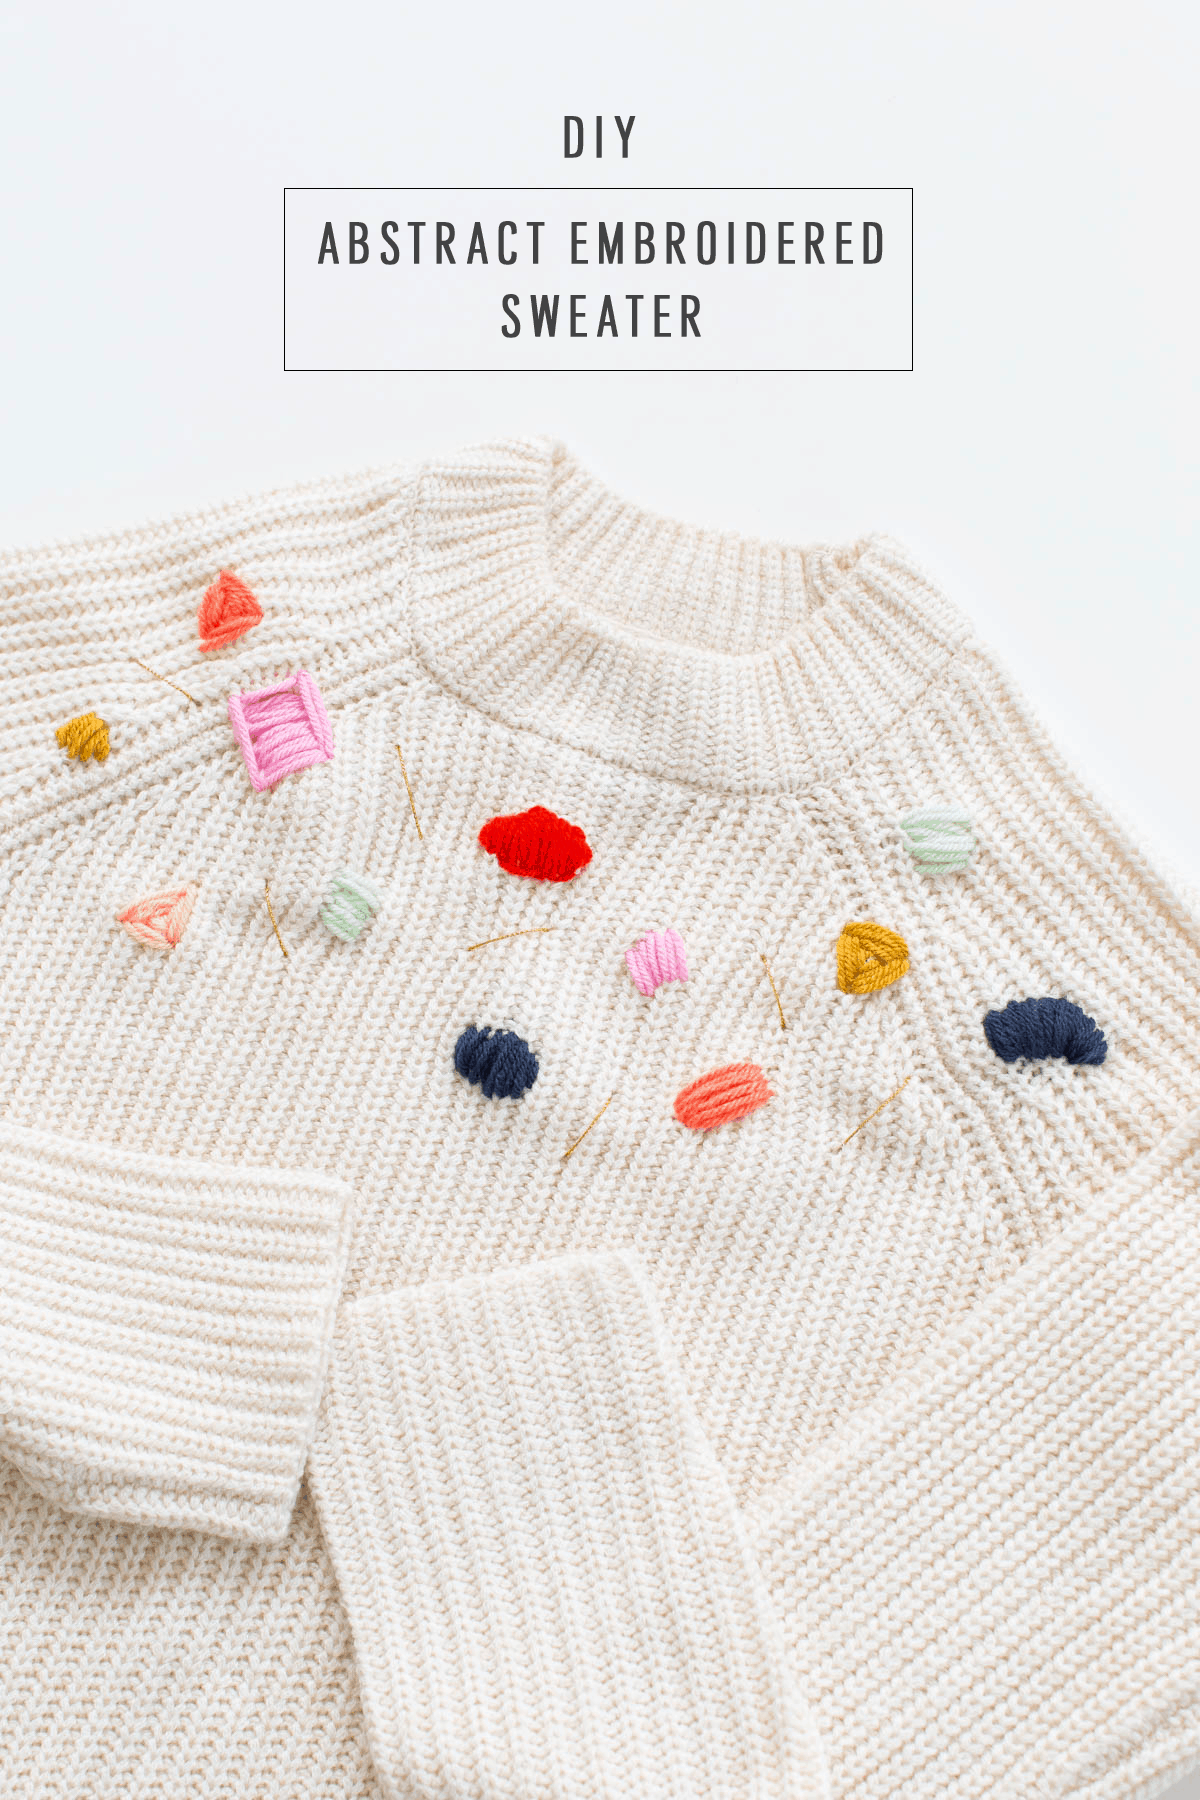 hallmark-diy-holiday-sweater-3